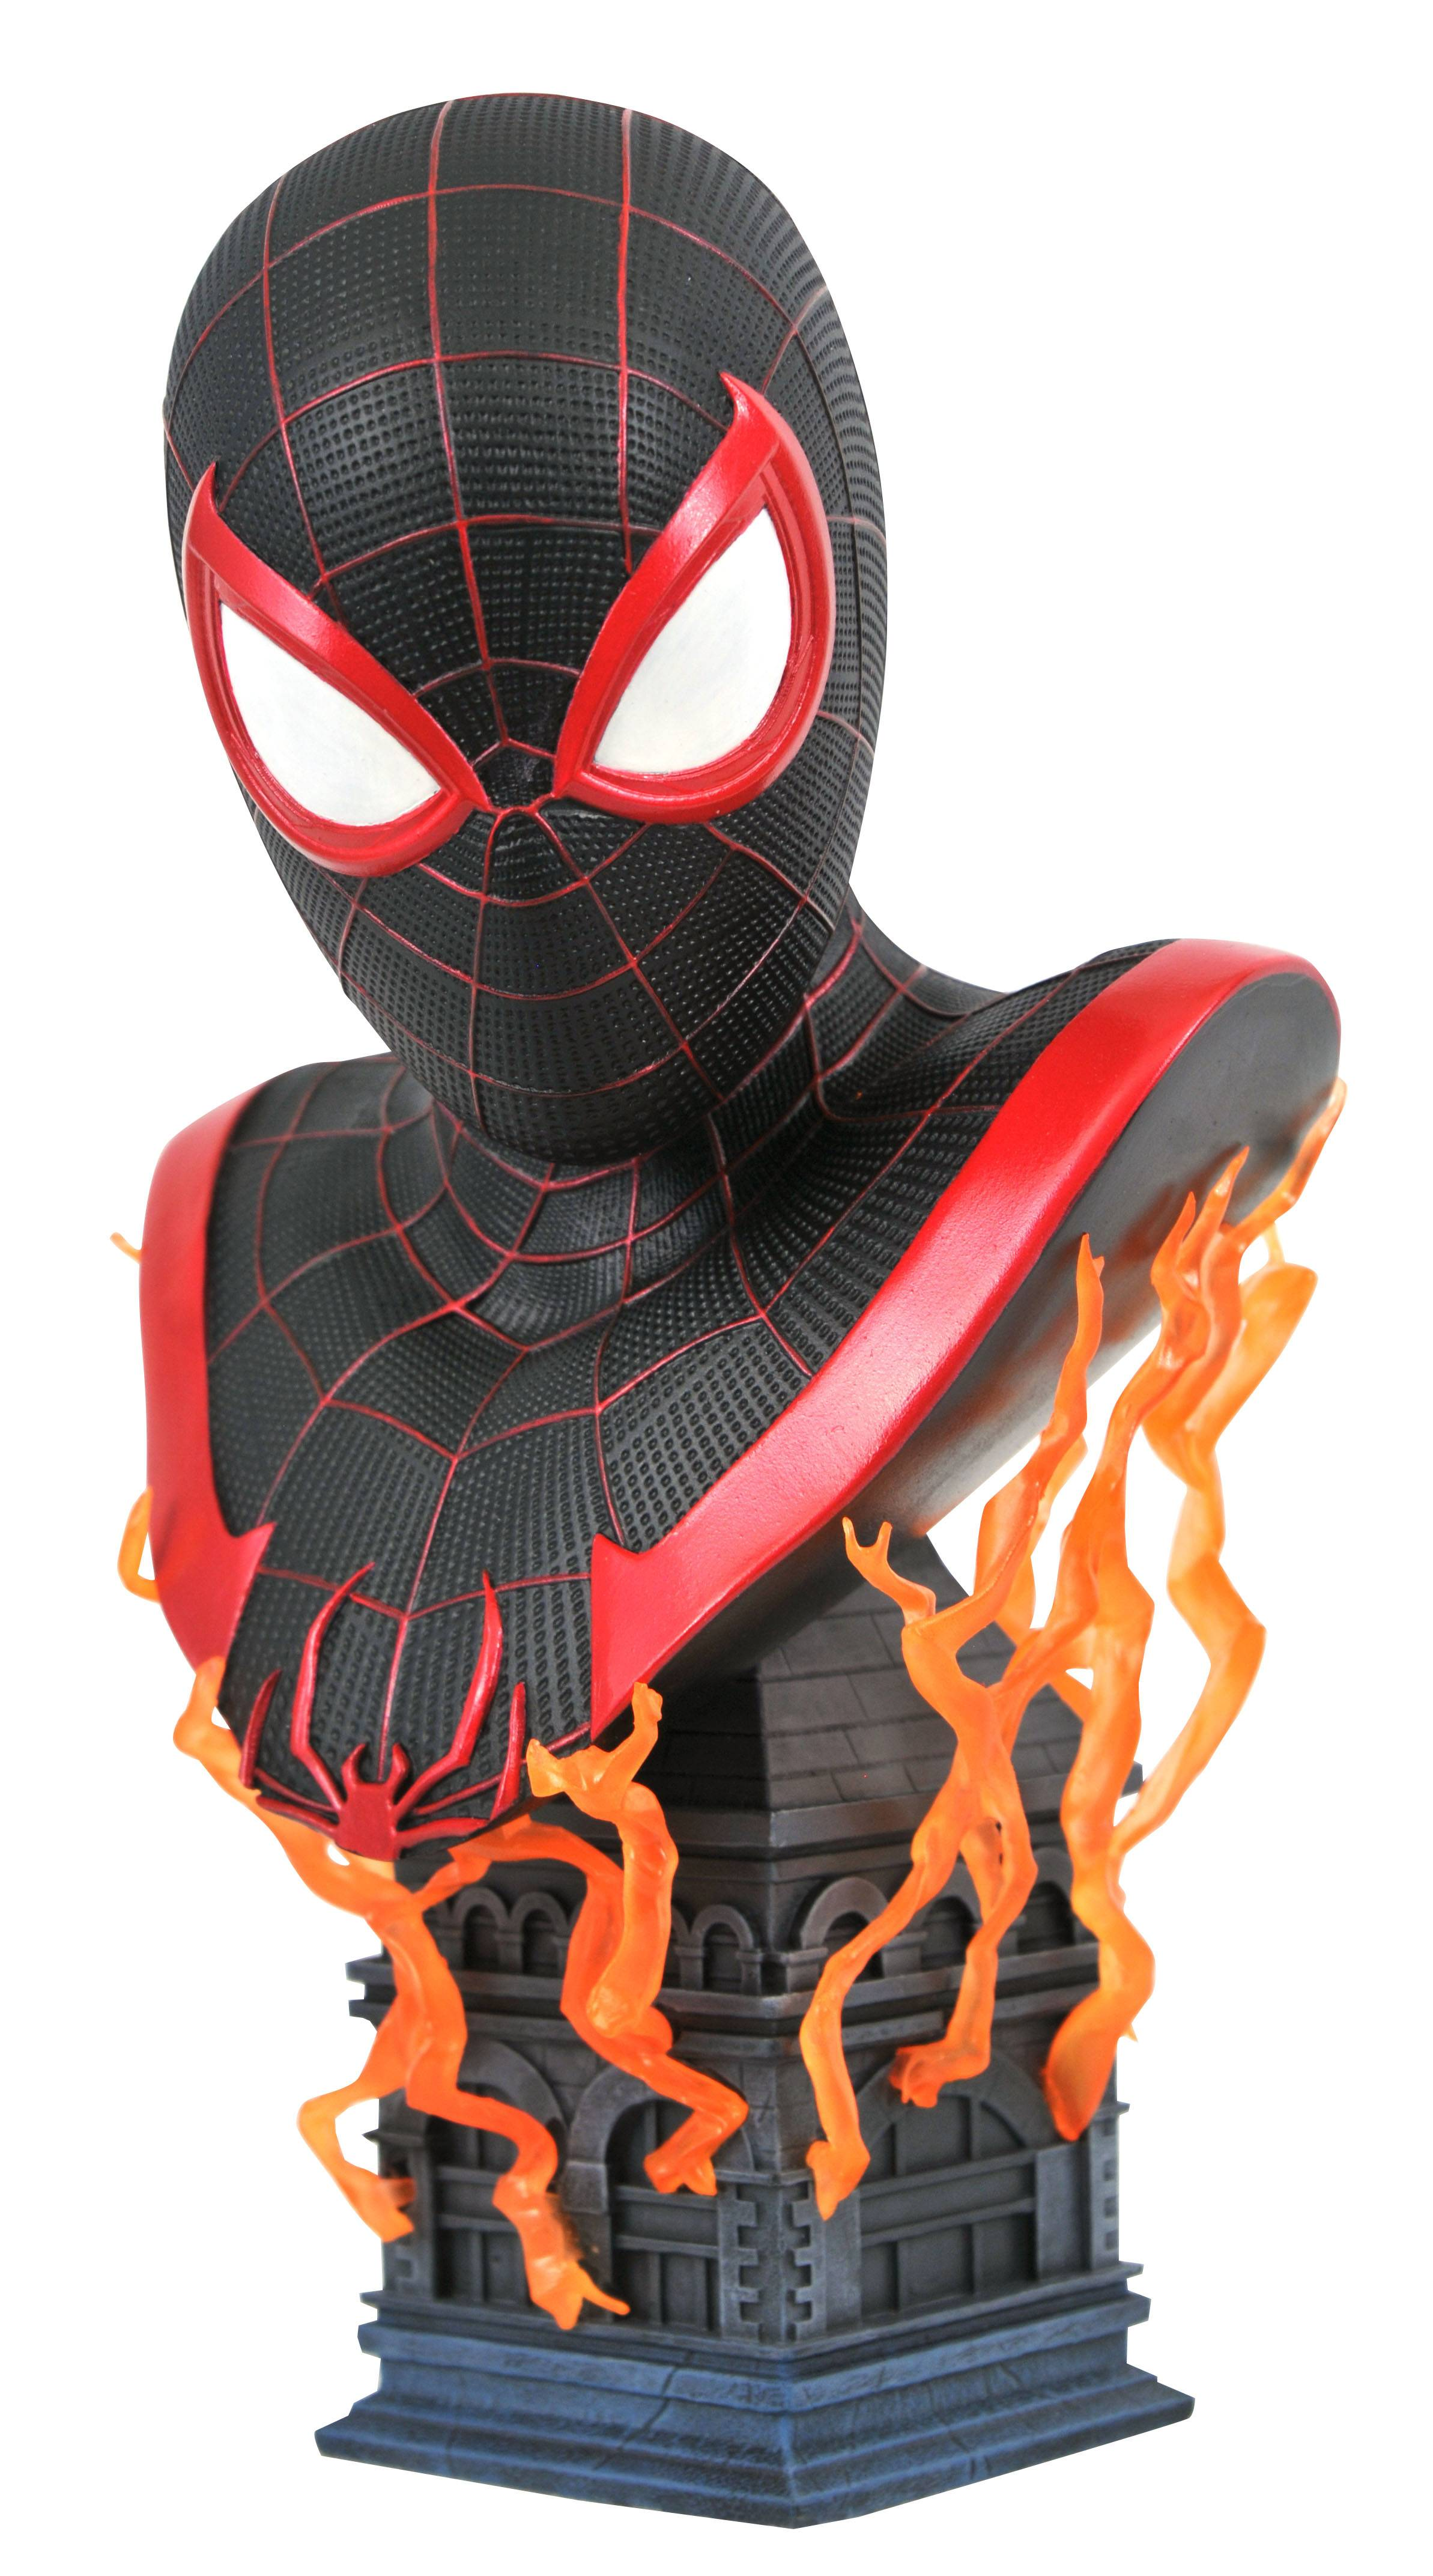 MARVEL LEGENDS IN 3D PS5 MILES MORALES 1/2 SCALE BUST